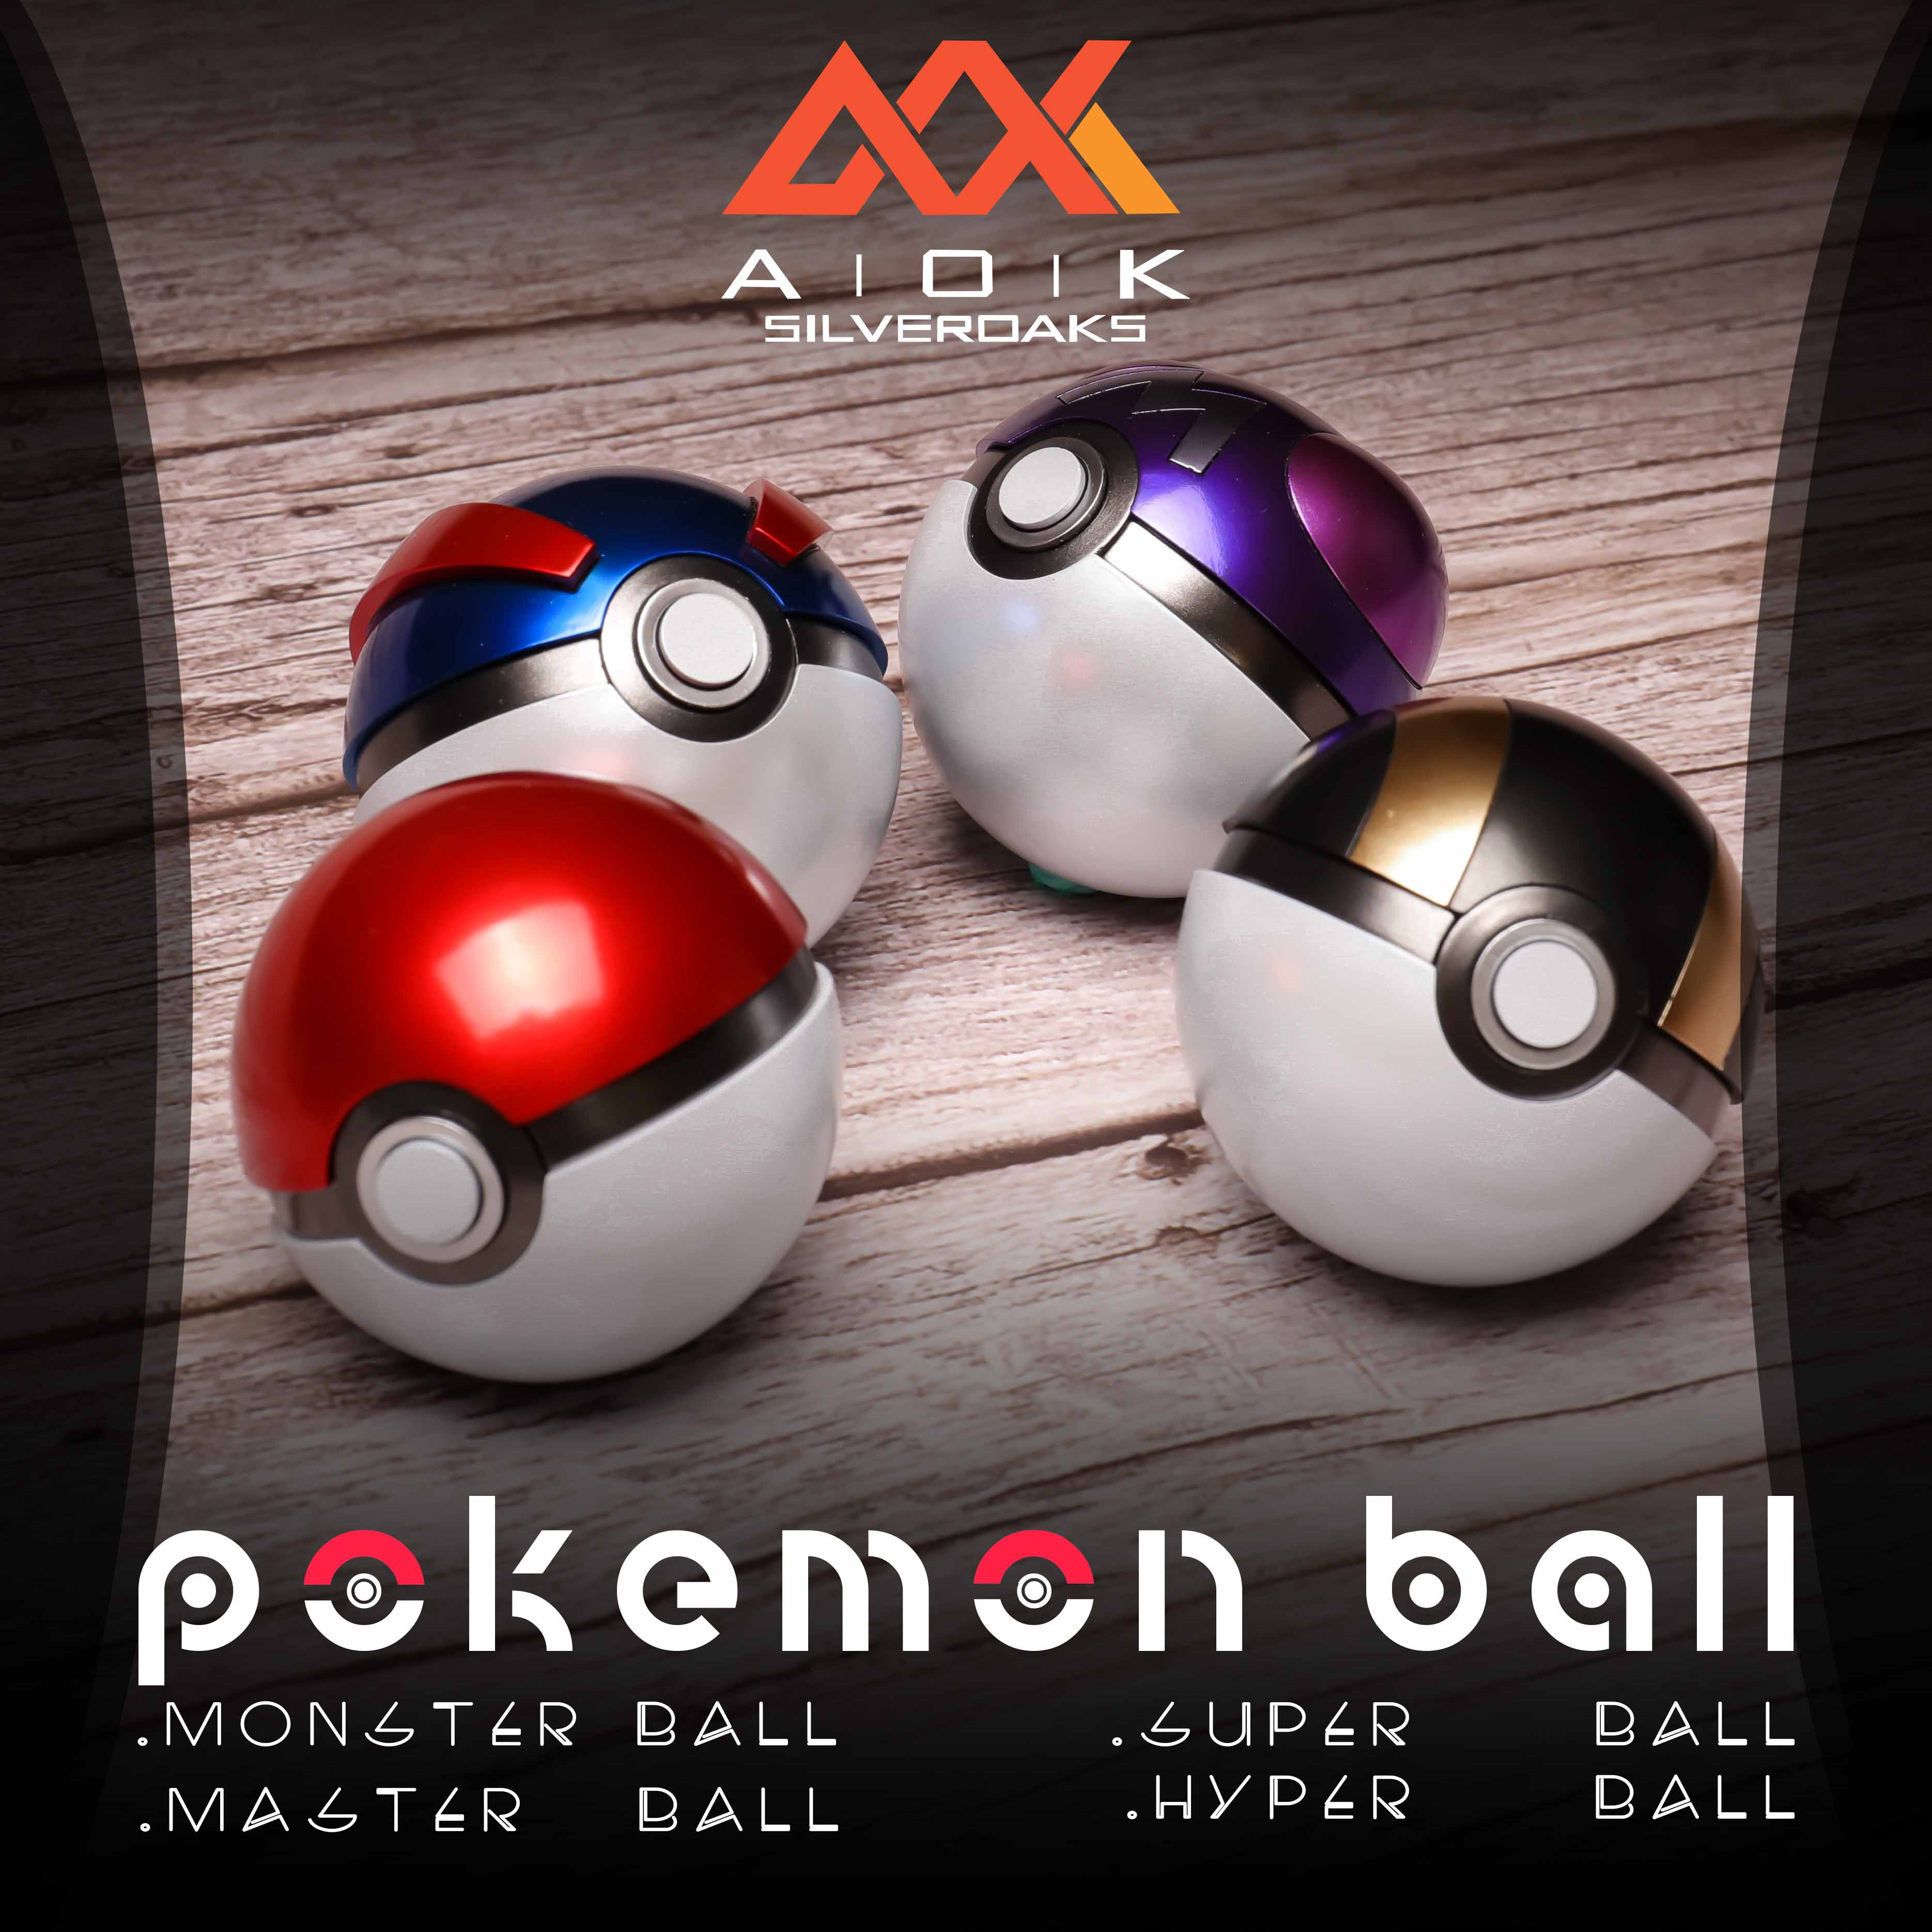 G509_pokemon_ball_001.jpg